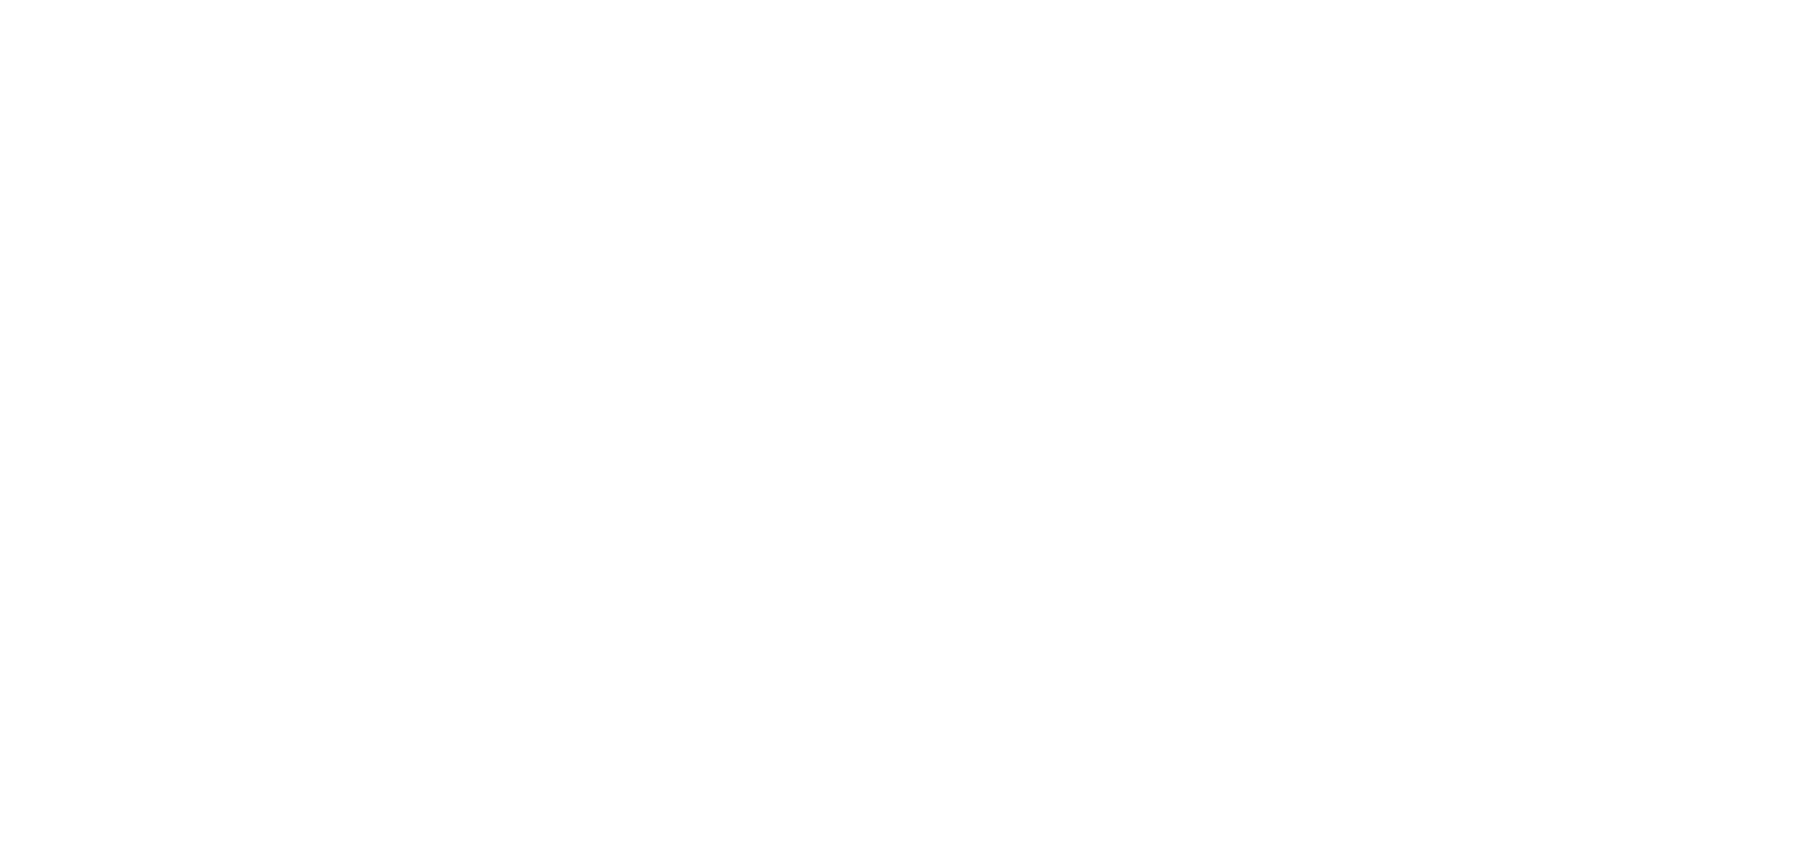 MAYFIELD TOYOTA